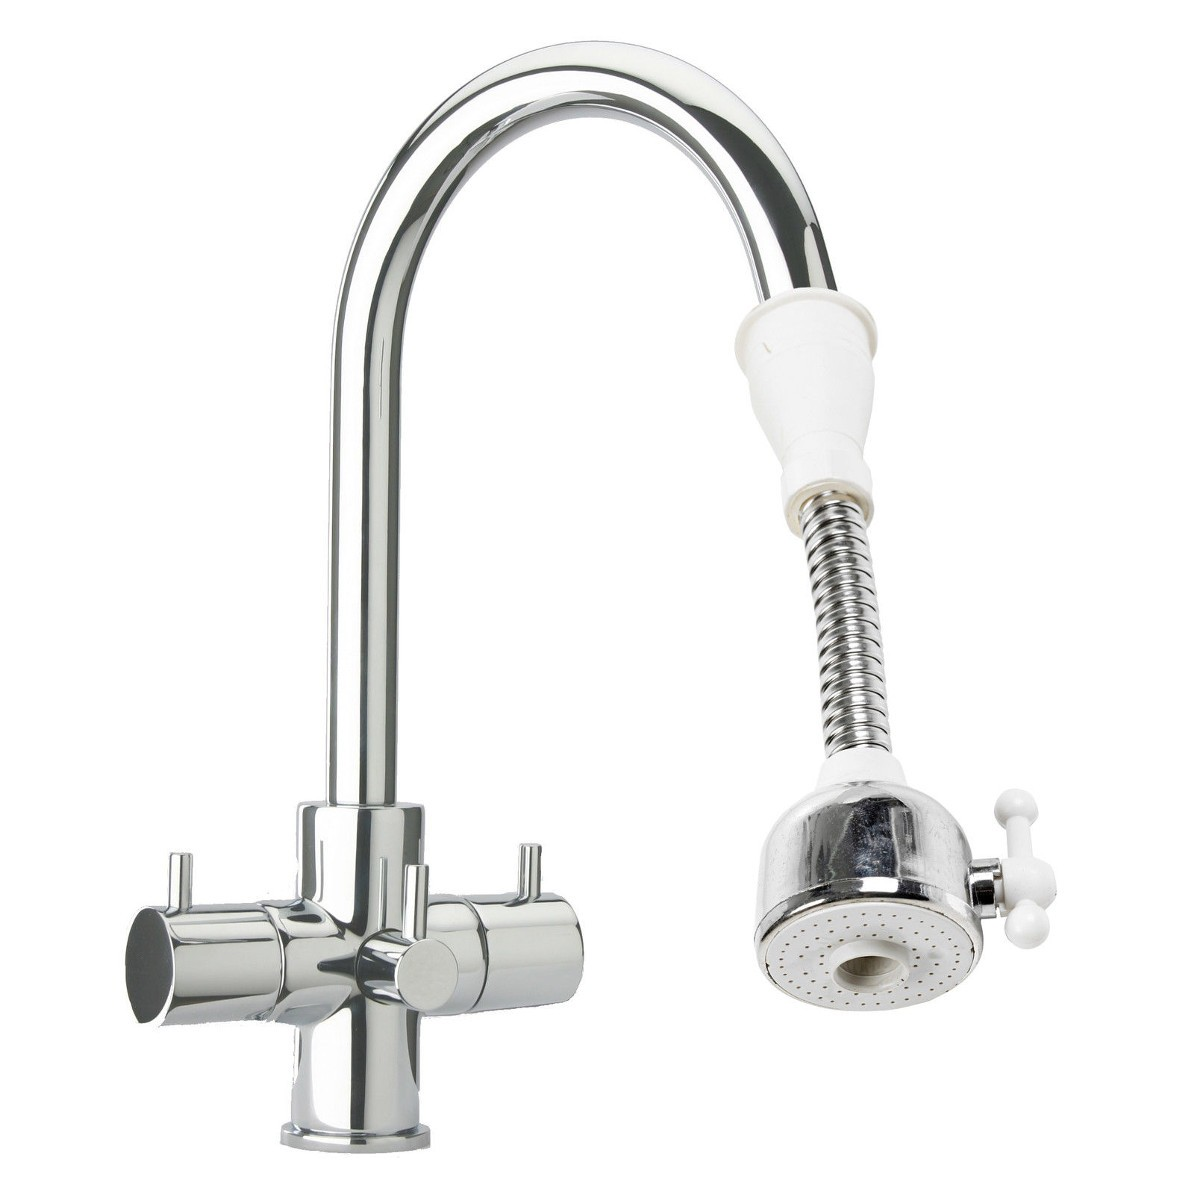 Water Saving Faucet Aerator Kitchen Tap Adjustable Nozzle Spout Hose Swivel